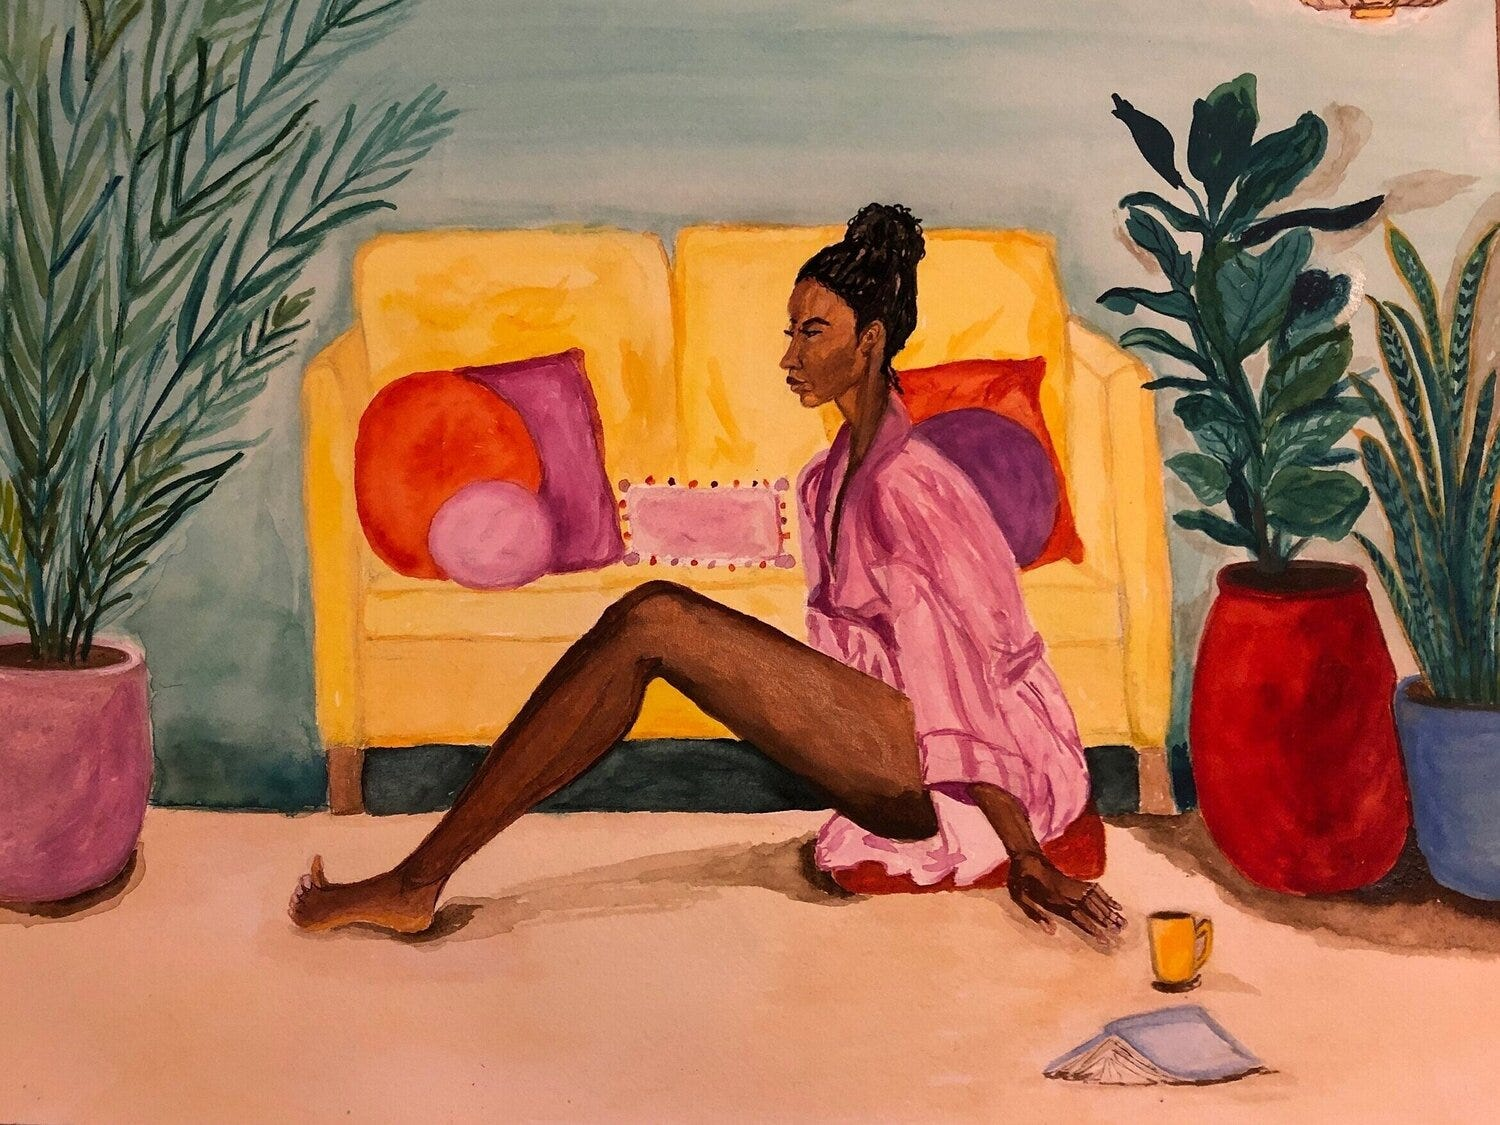 Stacey Billups, JOMO: Joy of Missing Out, 2019